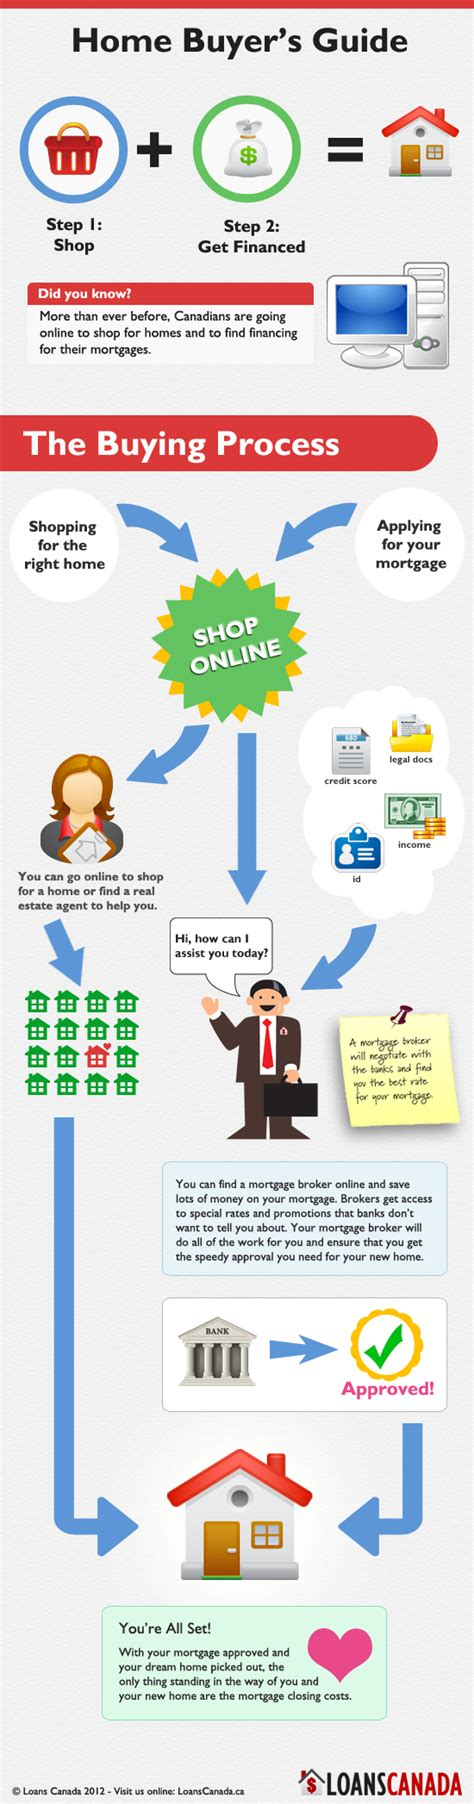 credit score after buying a house infographic buying a house loans canada